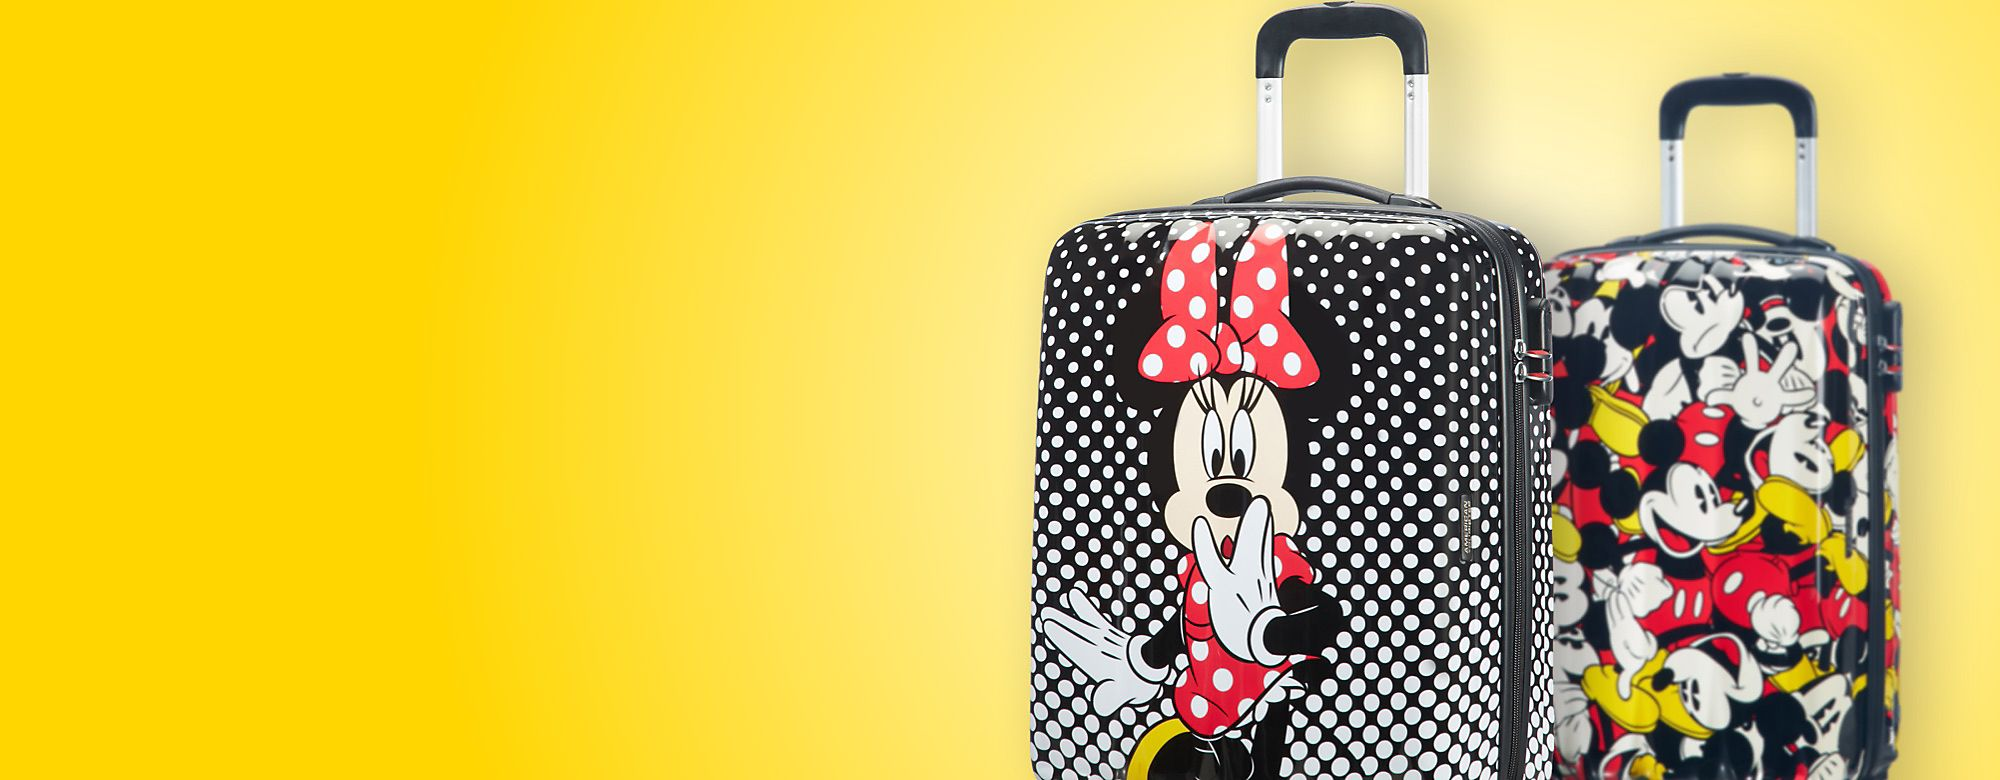 American Tourister  ALLE ANSEHEN